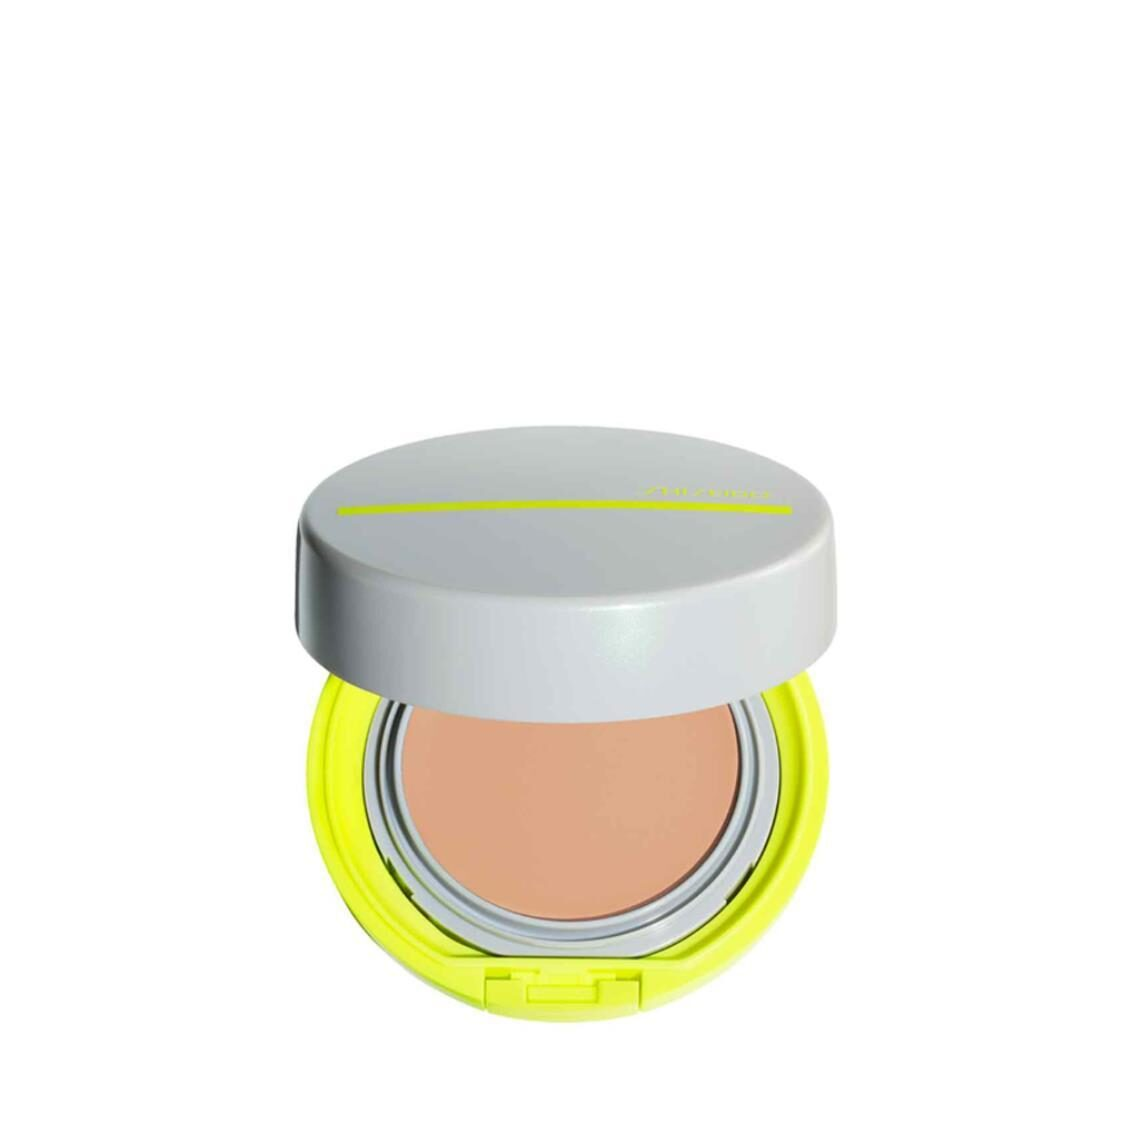 Global Suncare HydroBB Compact For Sports Refill